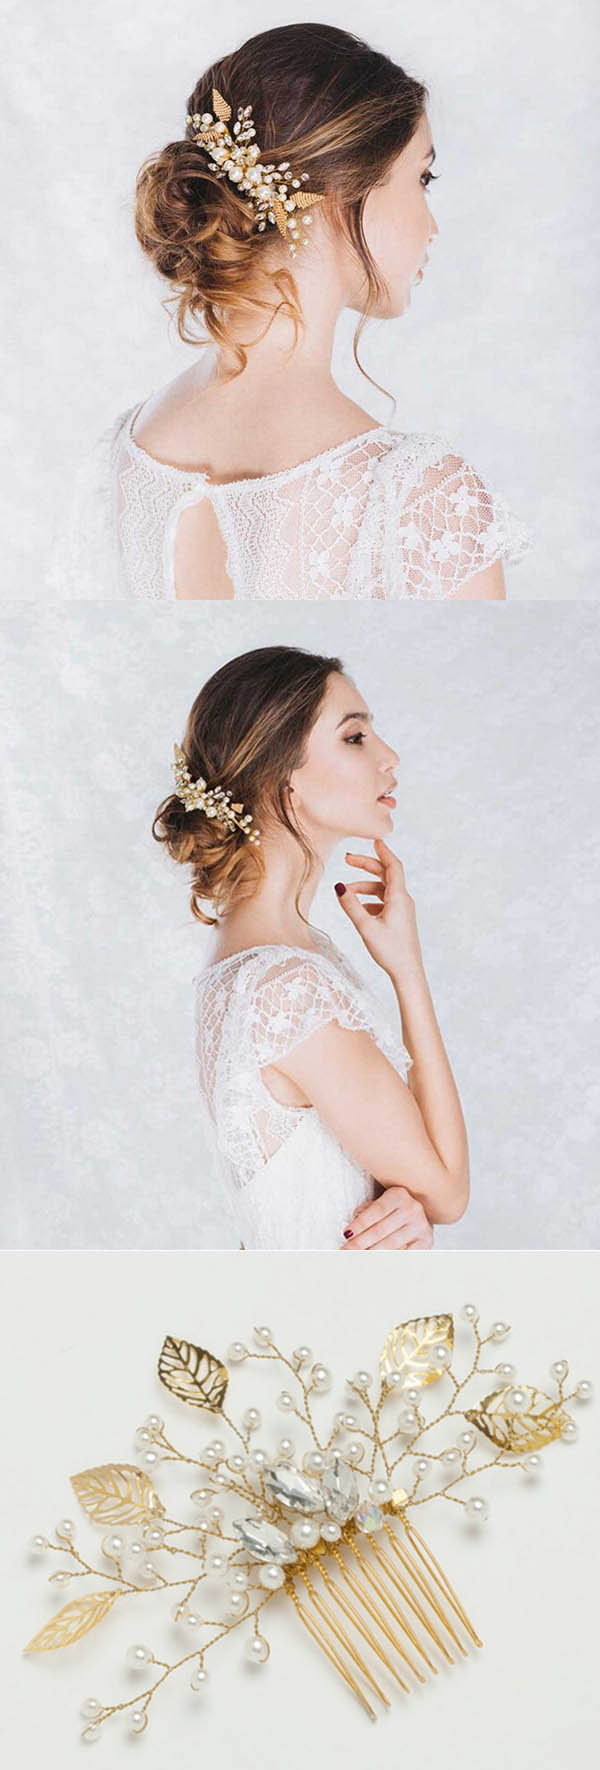 Wedding Accessories For Brides:20 Charming Bridal Headpieces ...